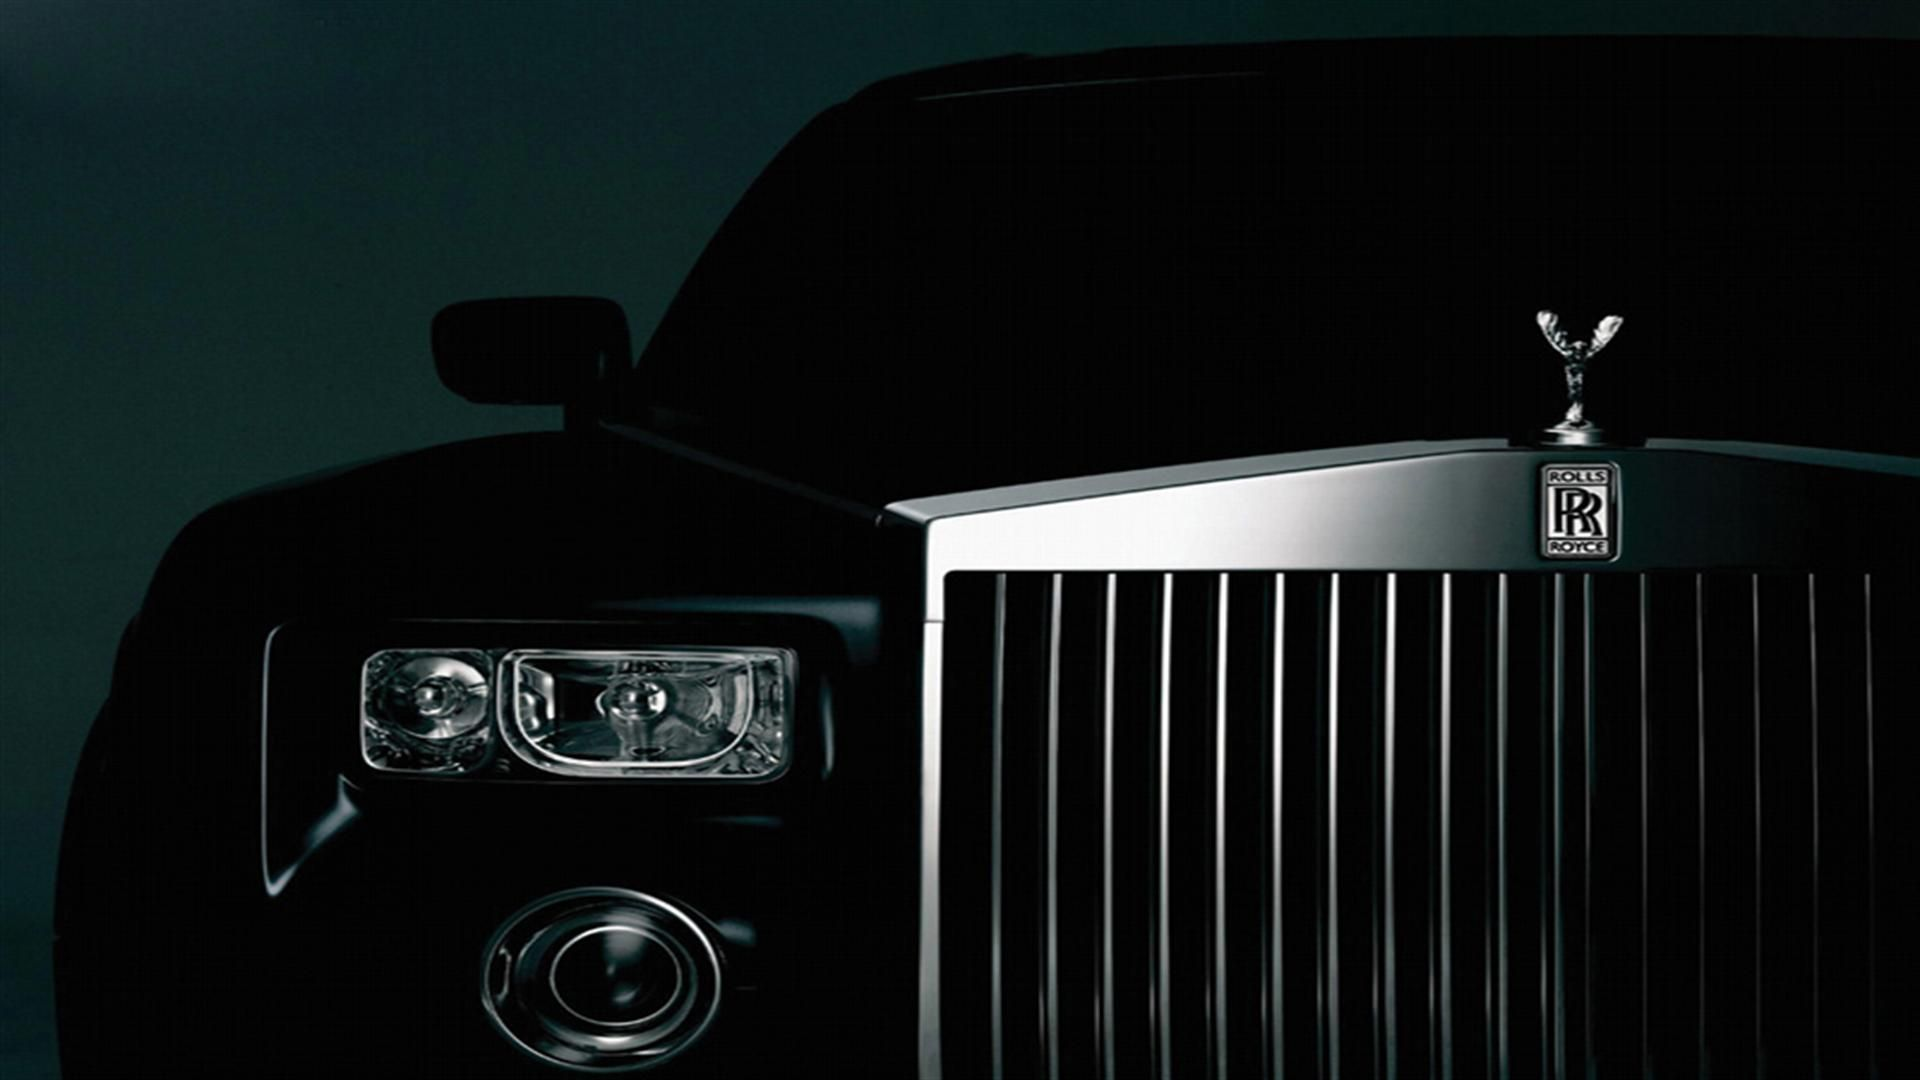 Rolls Royce Details Google Search Rolls Royce Wallpaper Rolls Royce Rolls Royce Phantom White